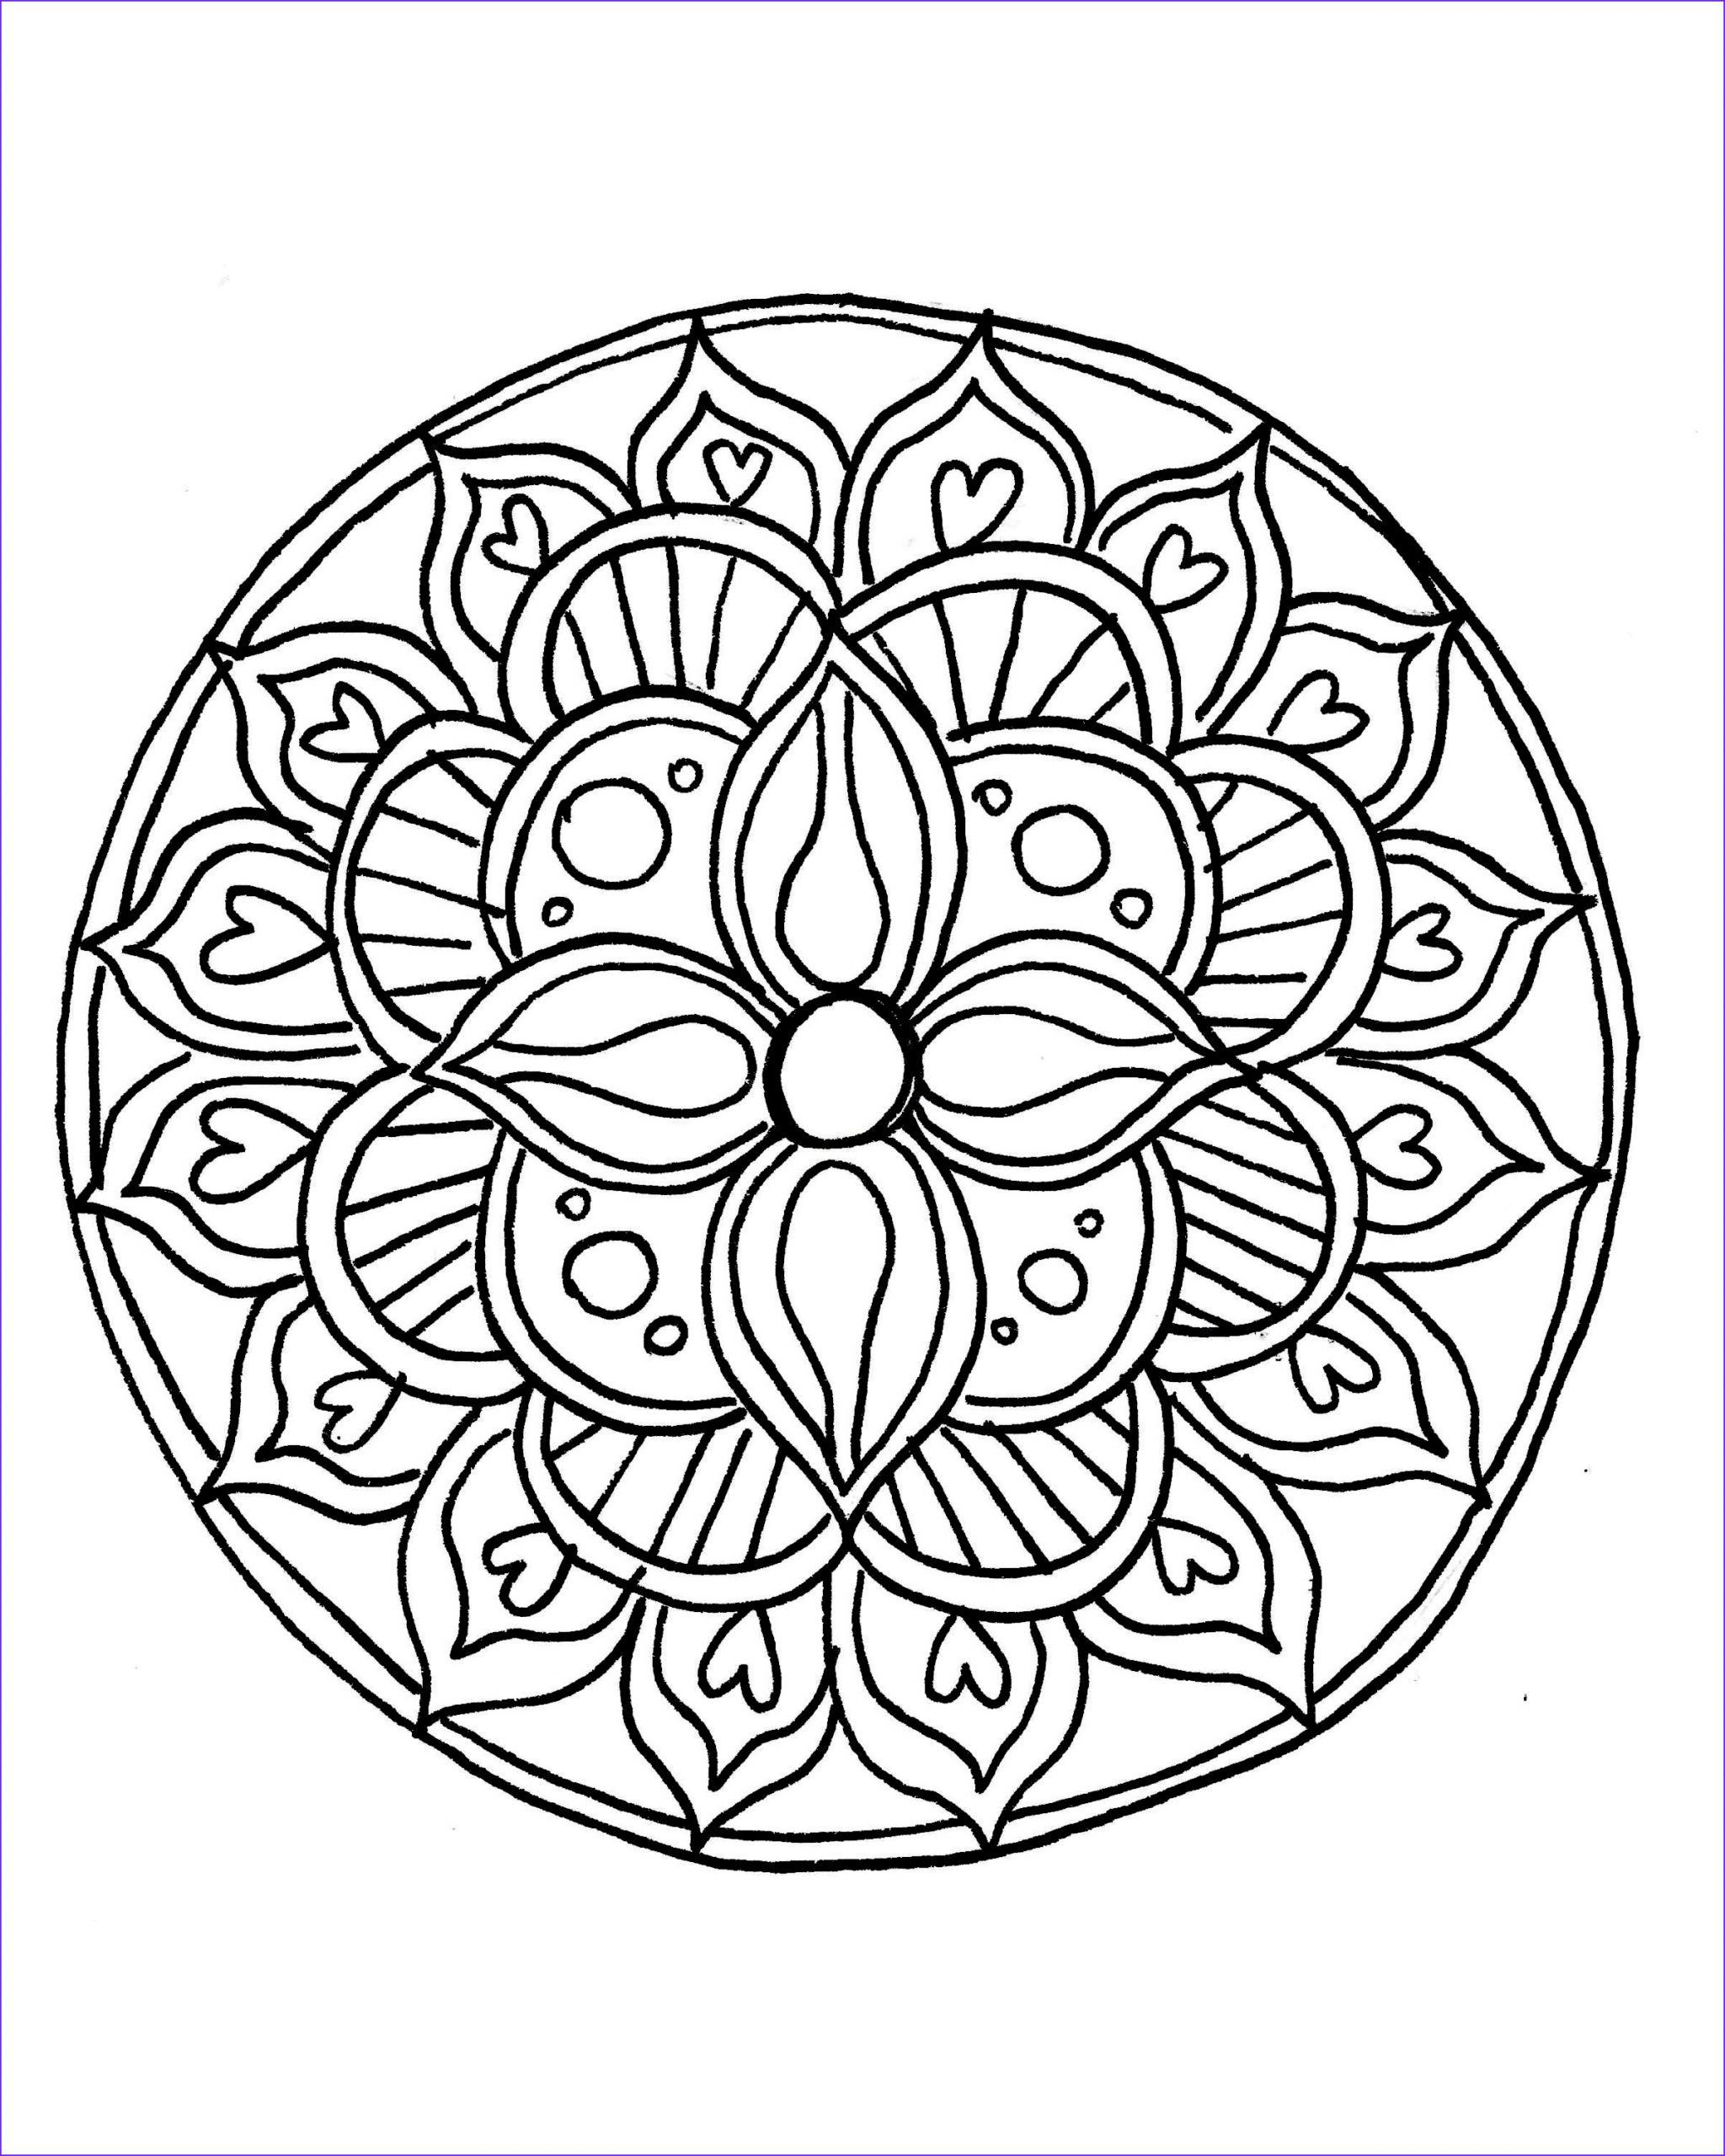 11 Inspirational Mandalas Coloring Pages Gallery 11 Inspirational Mandalas Coloring Pages Galler In 2020 Mandala Coloring Mandala Coloring Pages Mandala Coloring Books